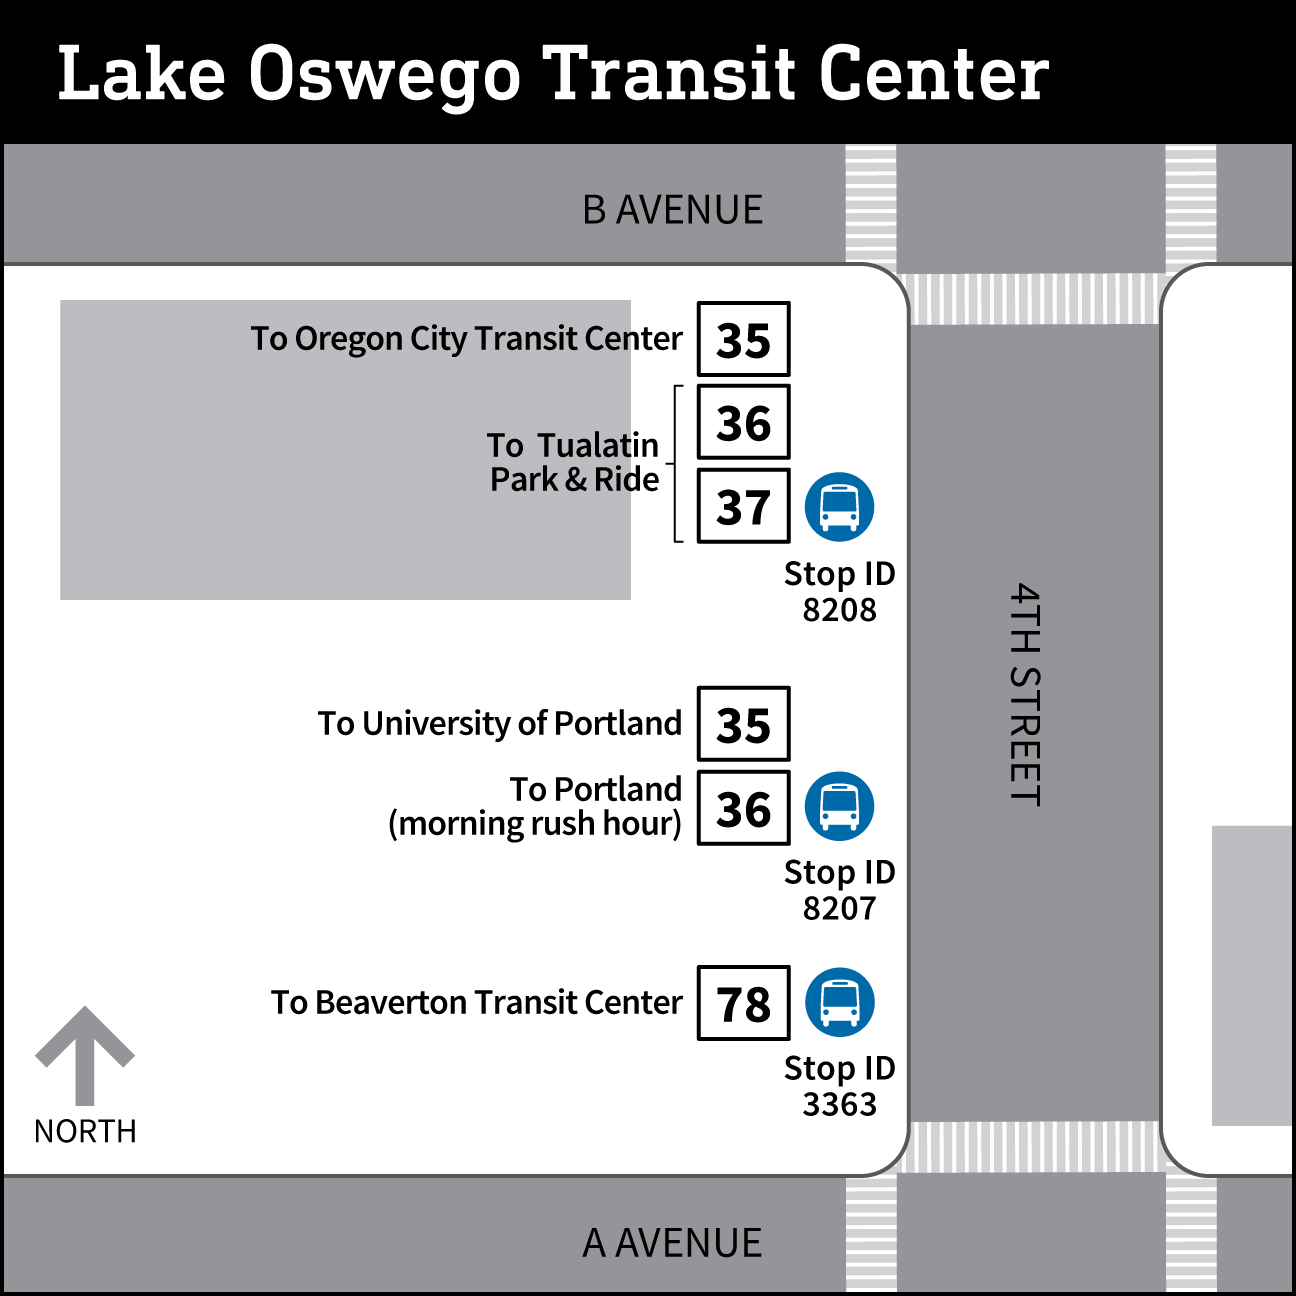 Lake Oswego Transit Center